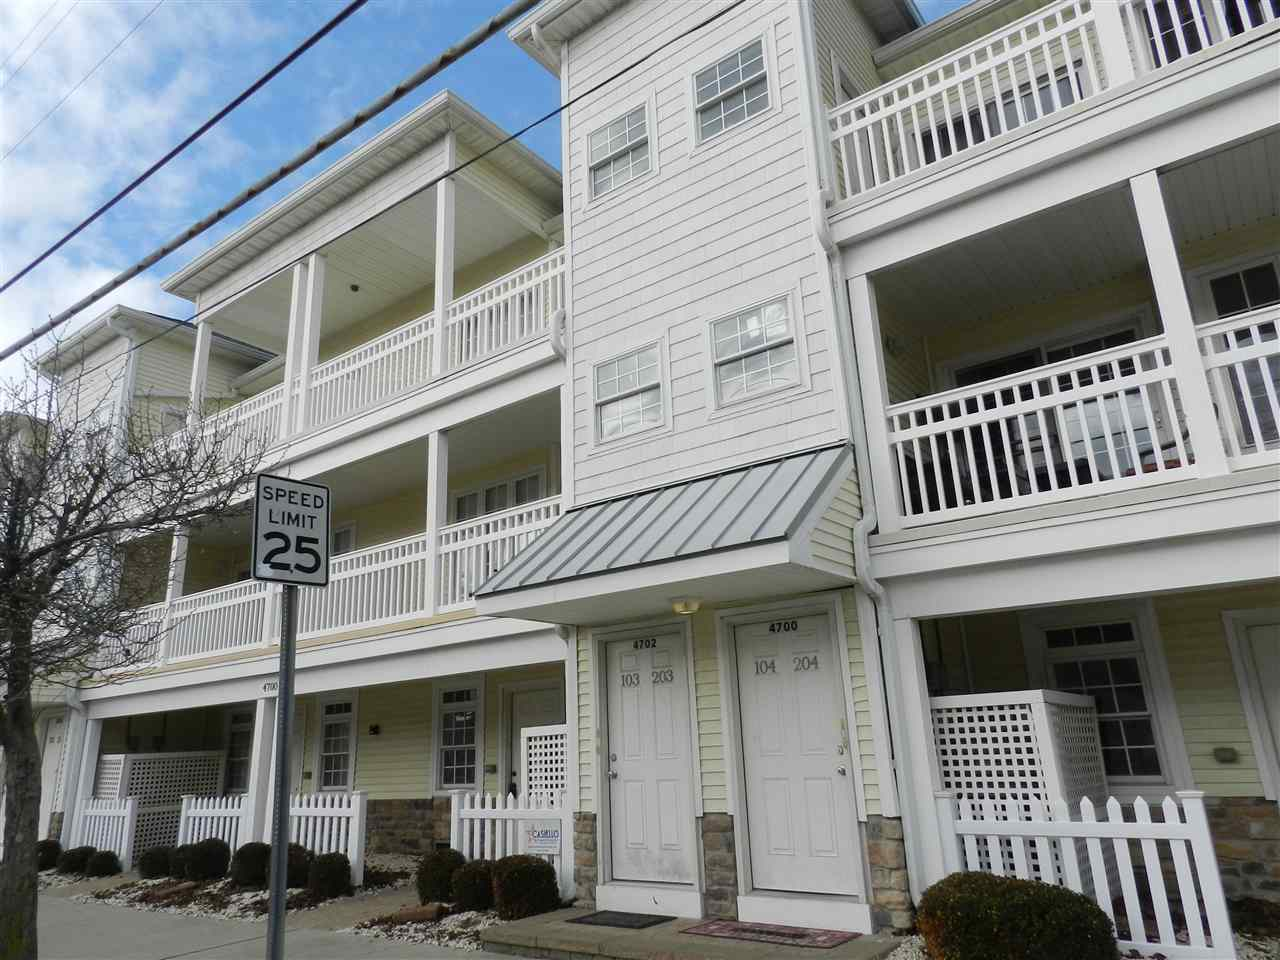 4702, Unit 203 Atlantic, Wildwood